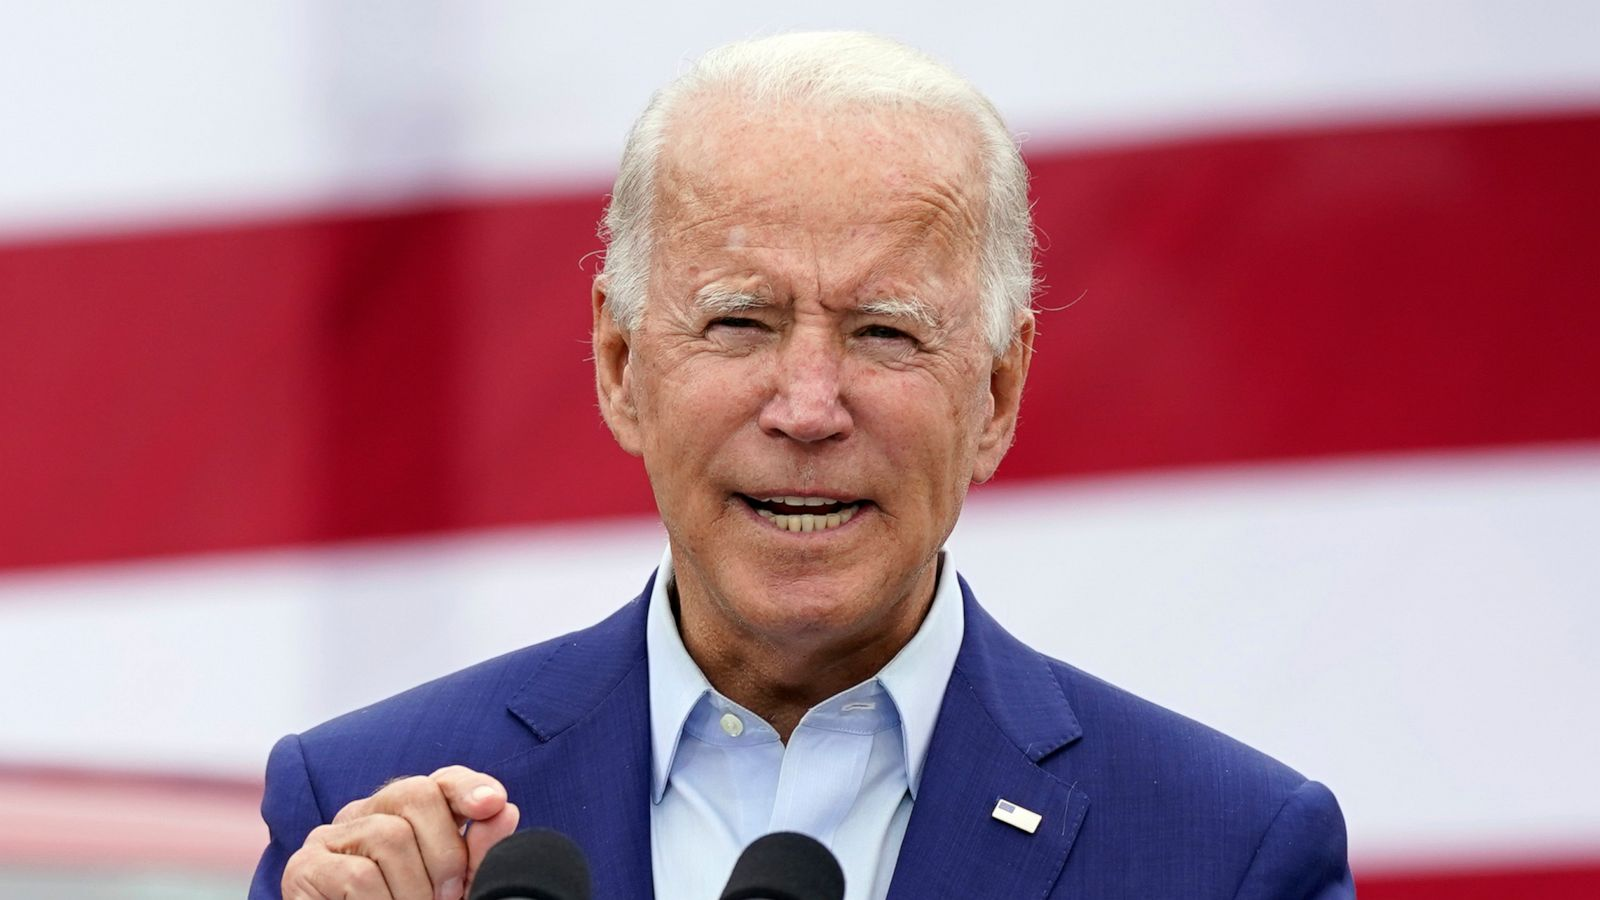 Joe Biden What You Need To Know About The Democratic Presidential Nominee Abc News